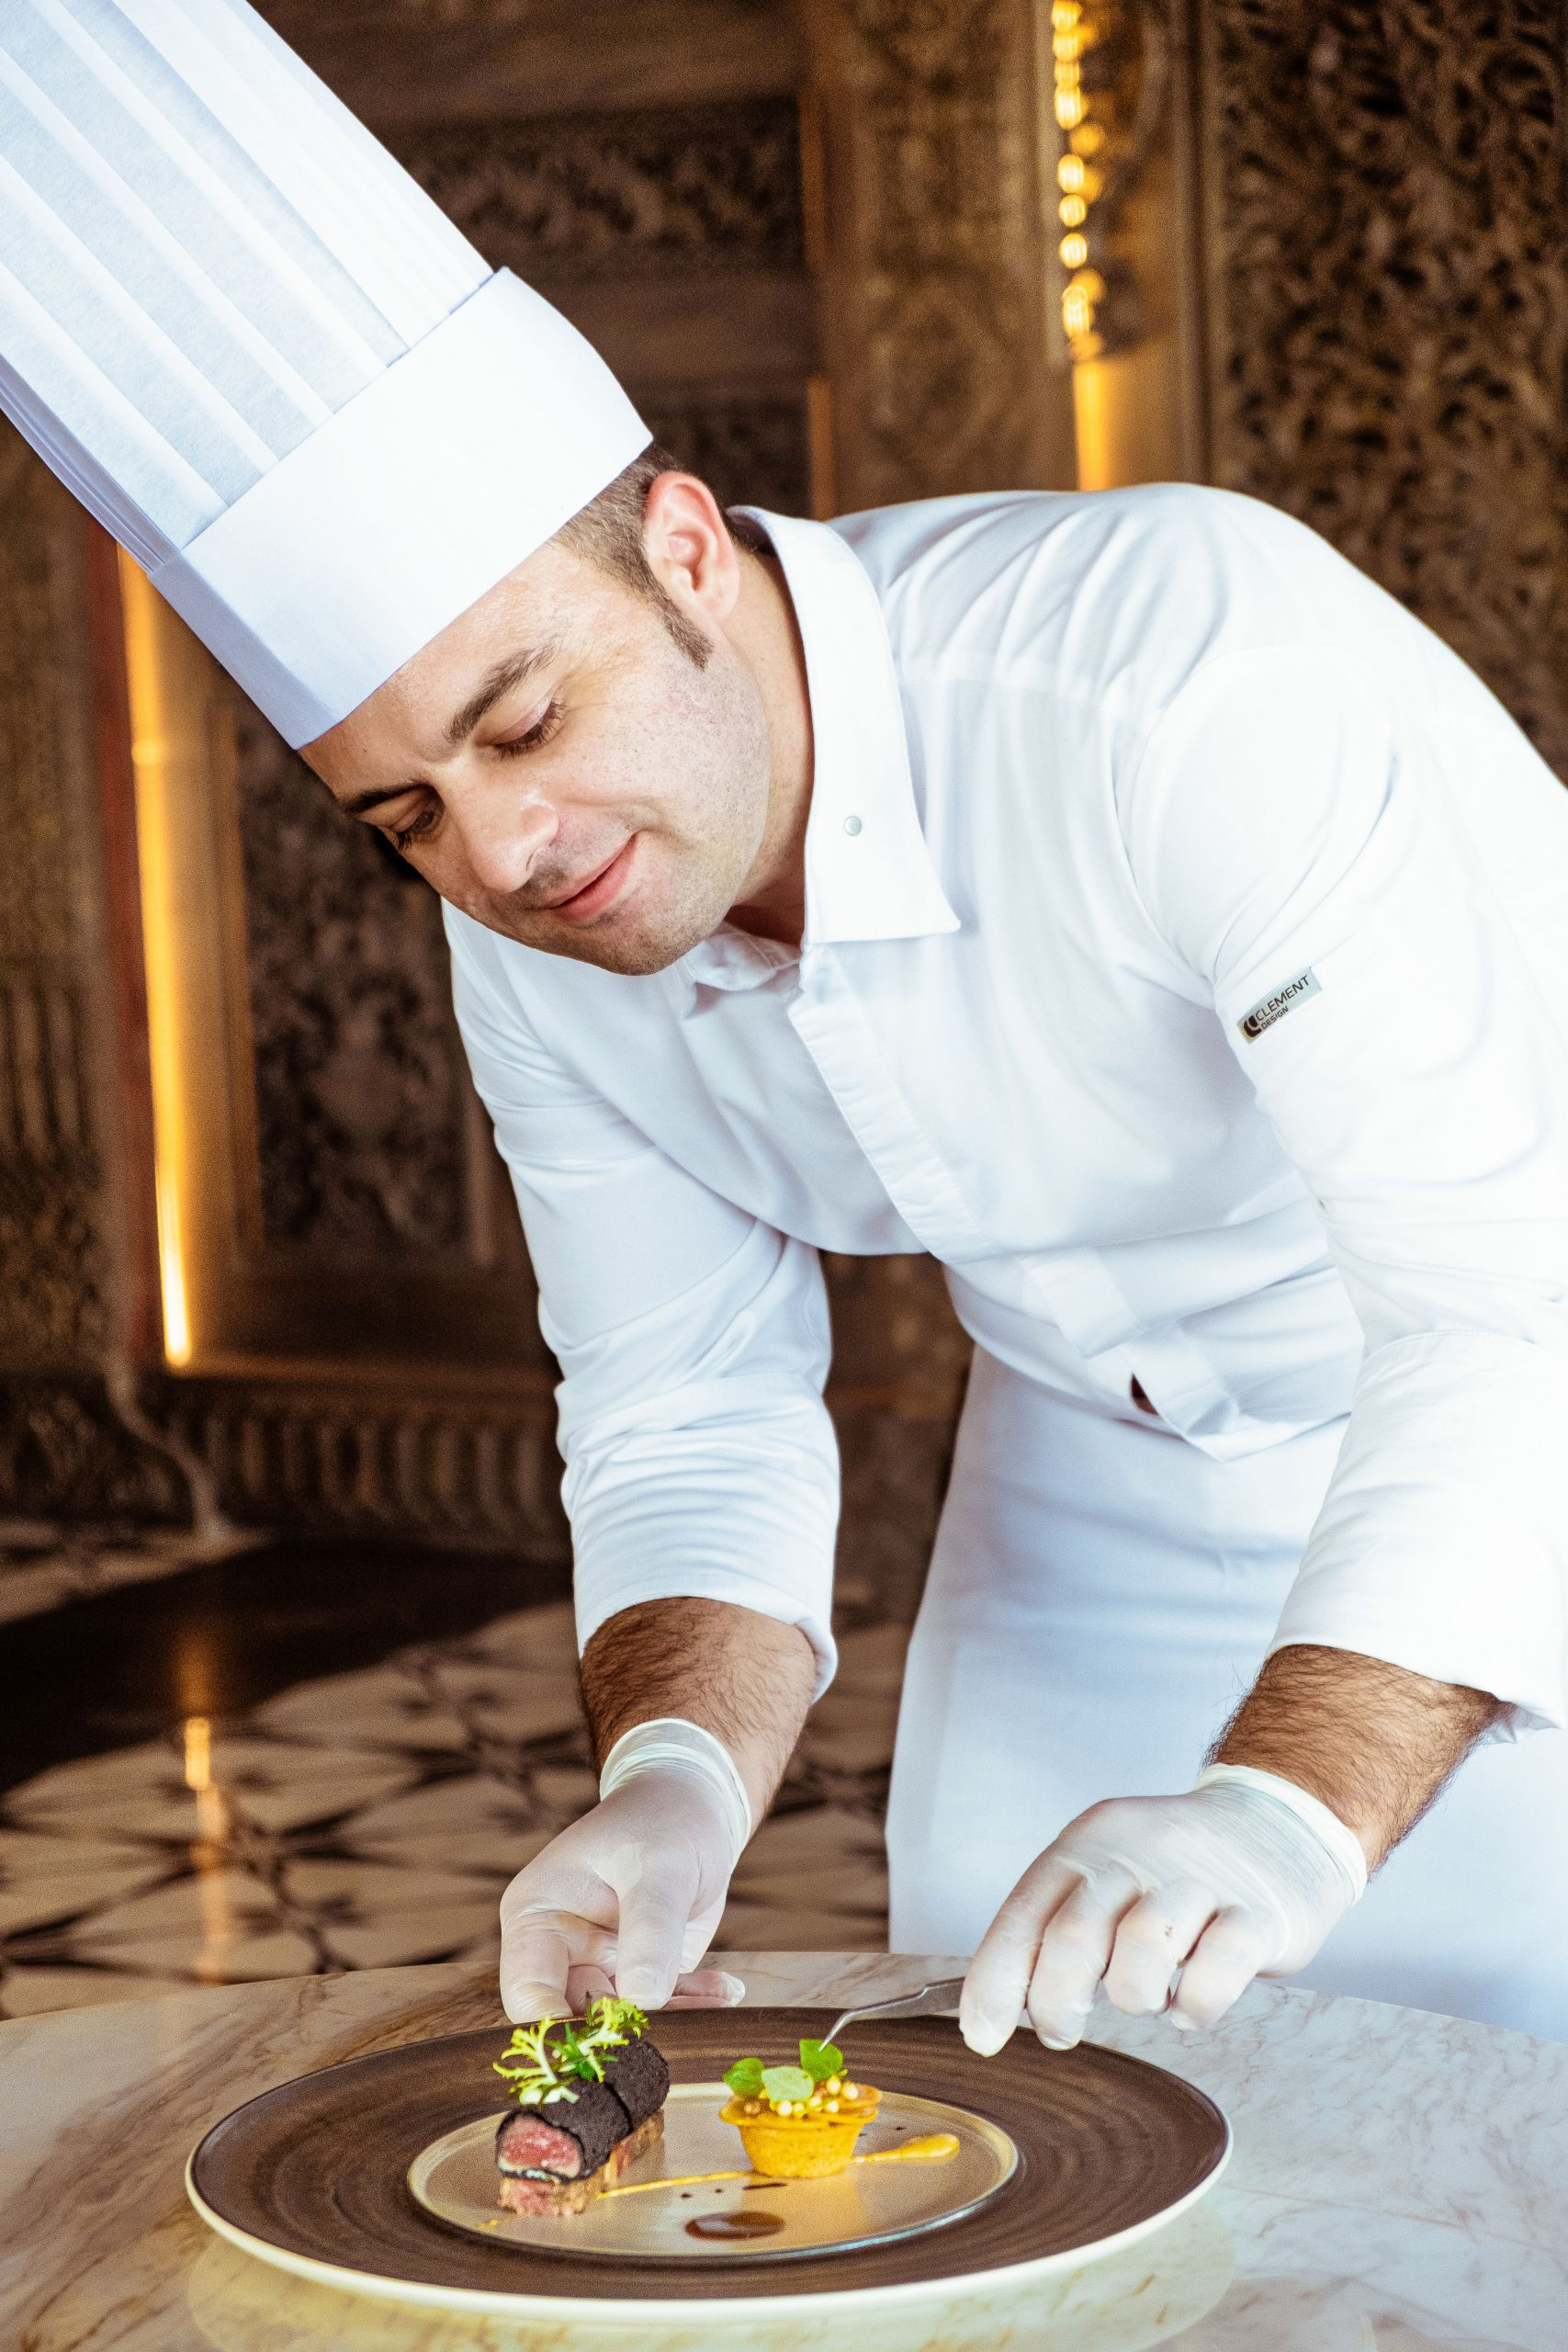 http://highend-traveller.com/the-apurva-kempinski-bali-and-koral-restaurant-welcome-andrea-astone-as-the-executive-sous-chef/